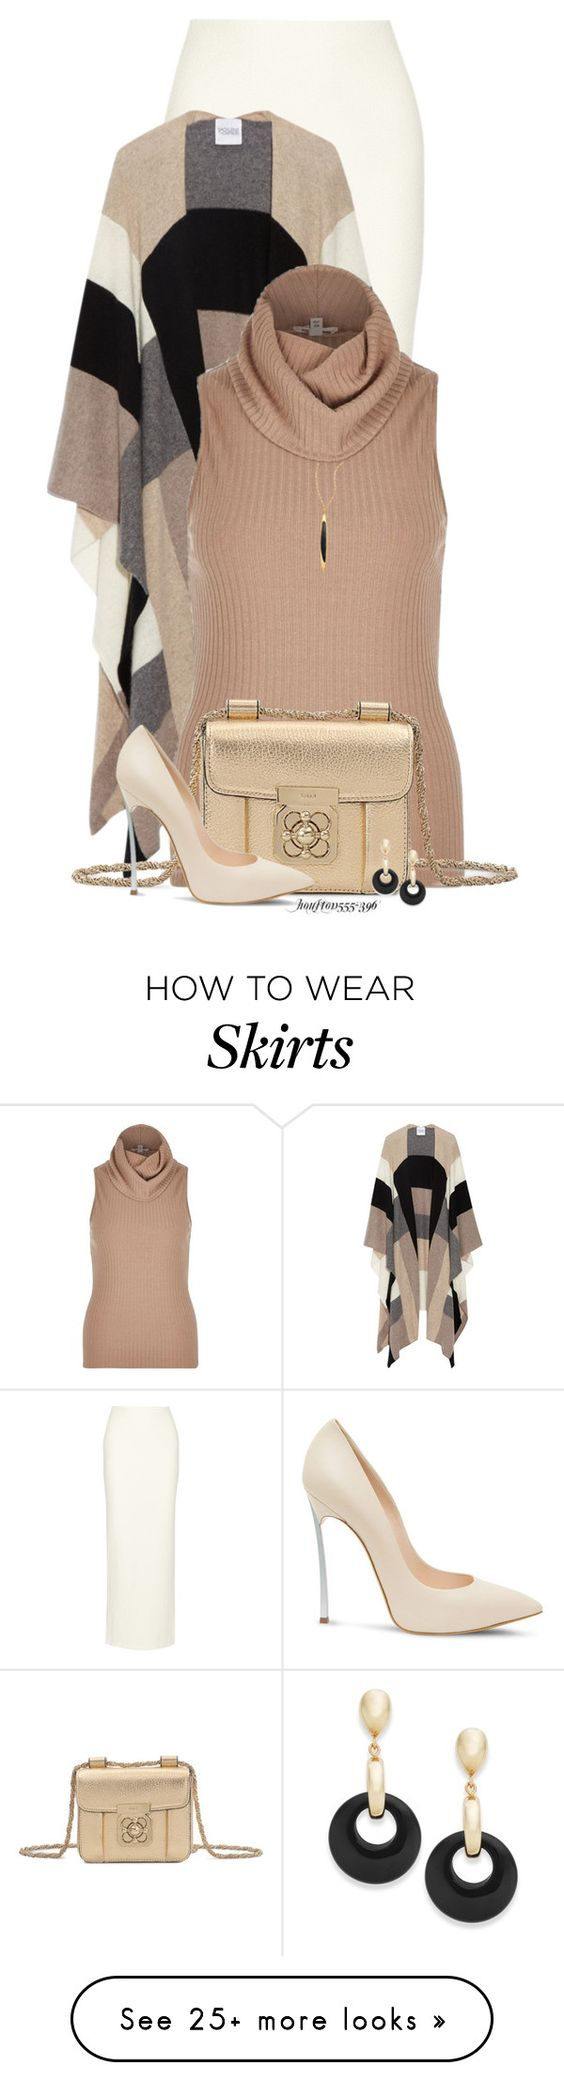 """Maxi Skirt for Fall"" by houston555-396 on Polyvore featuring Alice + Olivia, Madeleine Thompson, River Island, Chloé, Casadei, Lana and Signature Gold:"